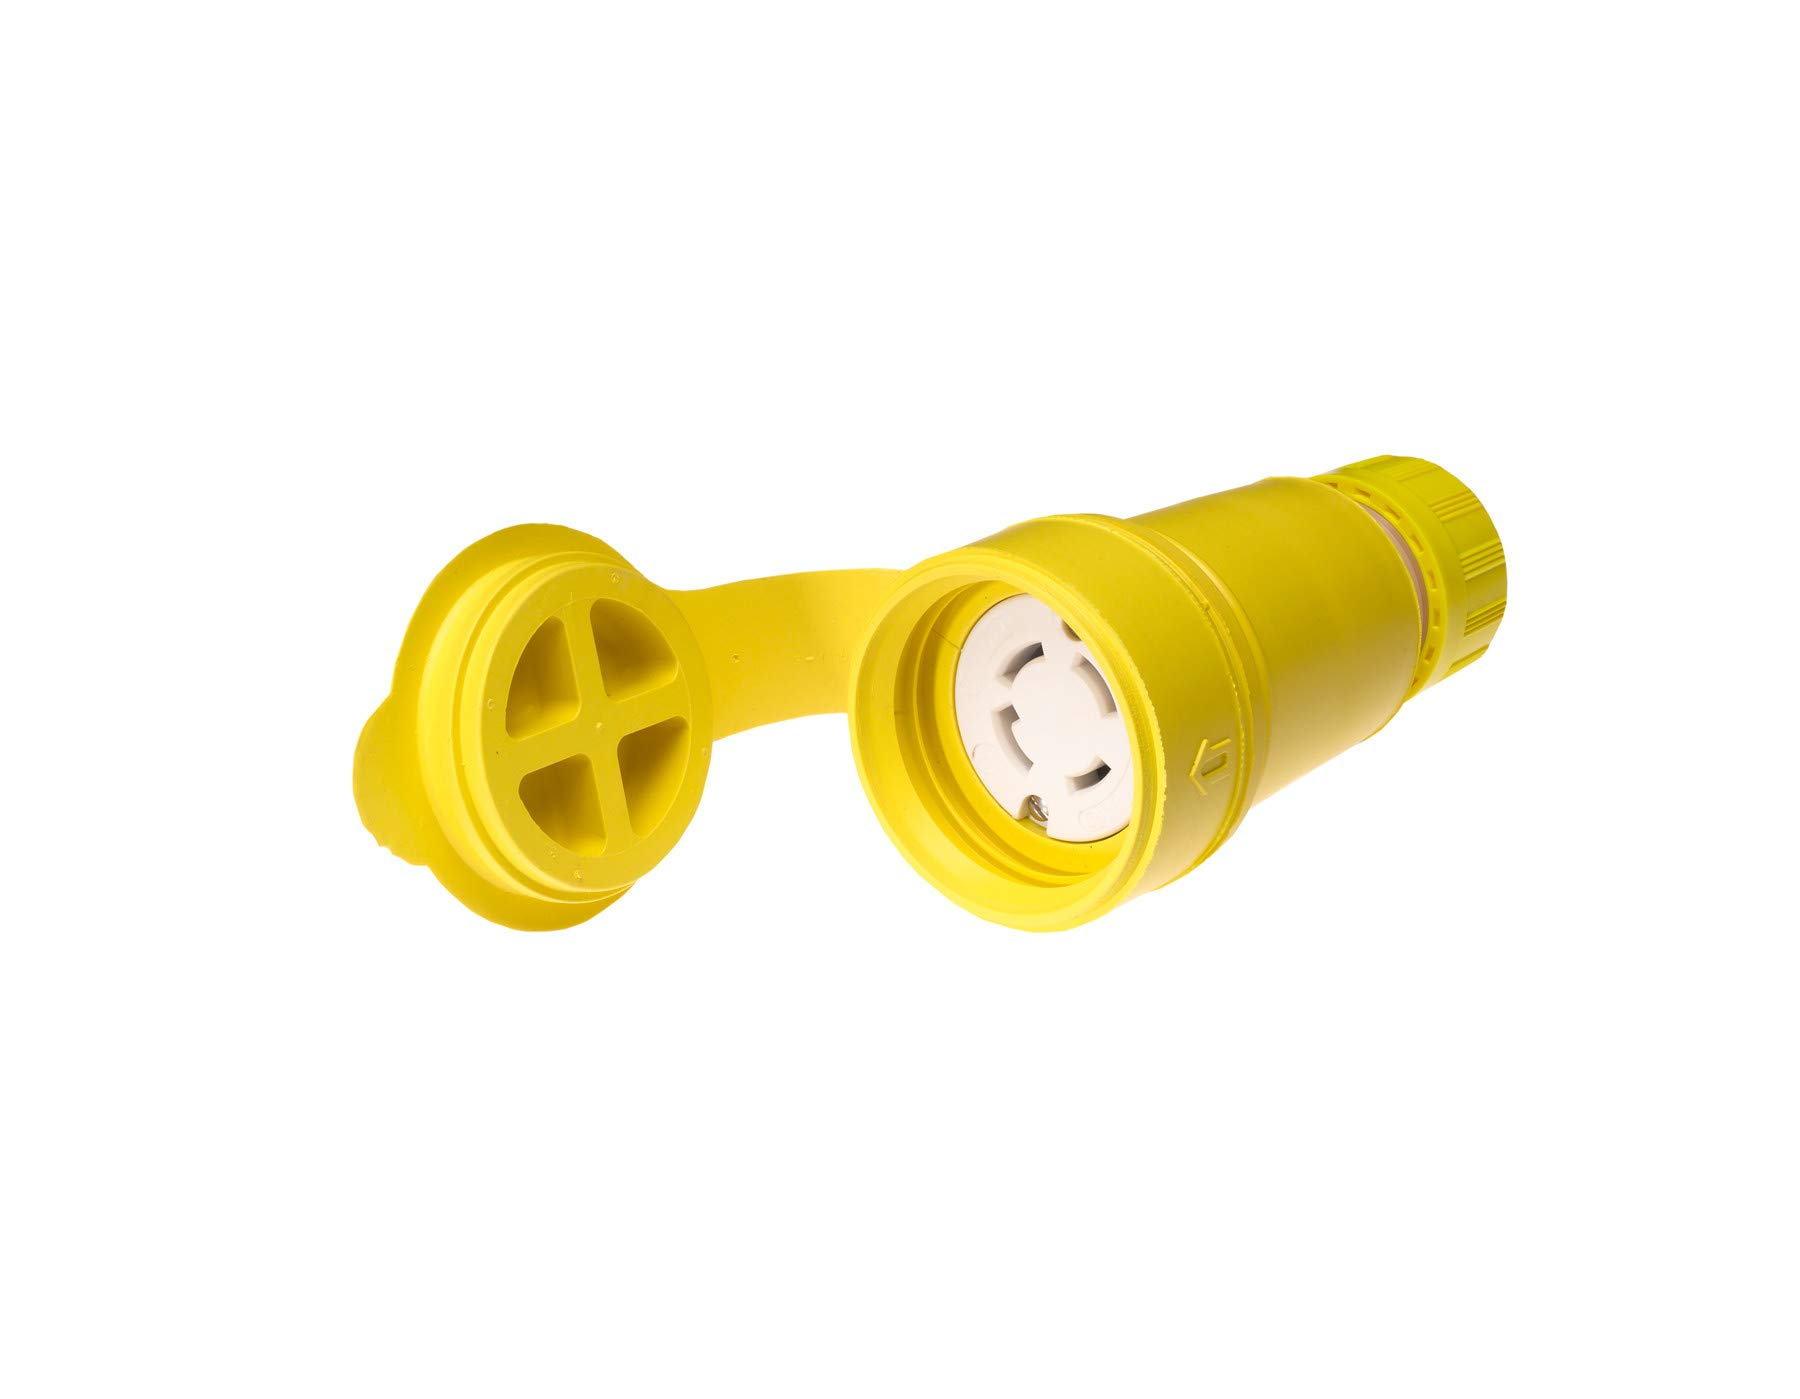 Woodhead 29W76 Watertite Wet Location Locking Blade Connector, 3-Phase, 4 Wires, 3 Poles, NEMA L16-30 Configuration, Yellow, 30A Current, 480V Voltage